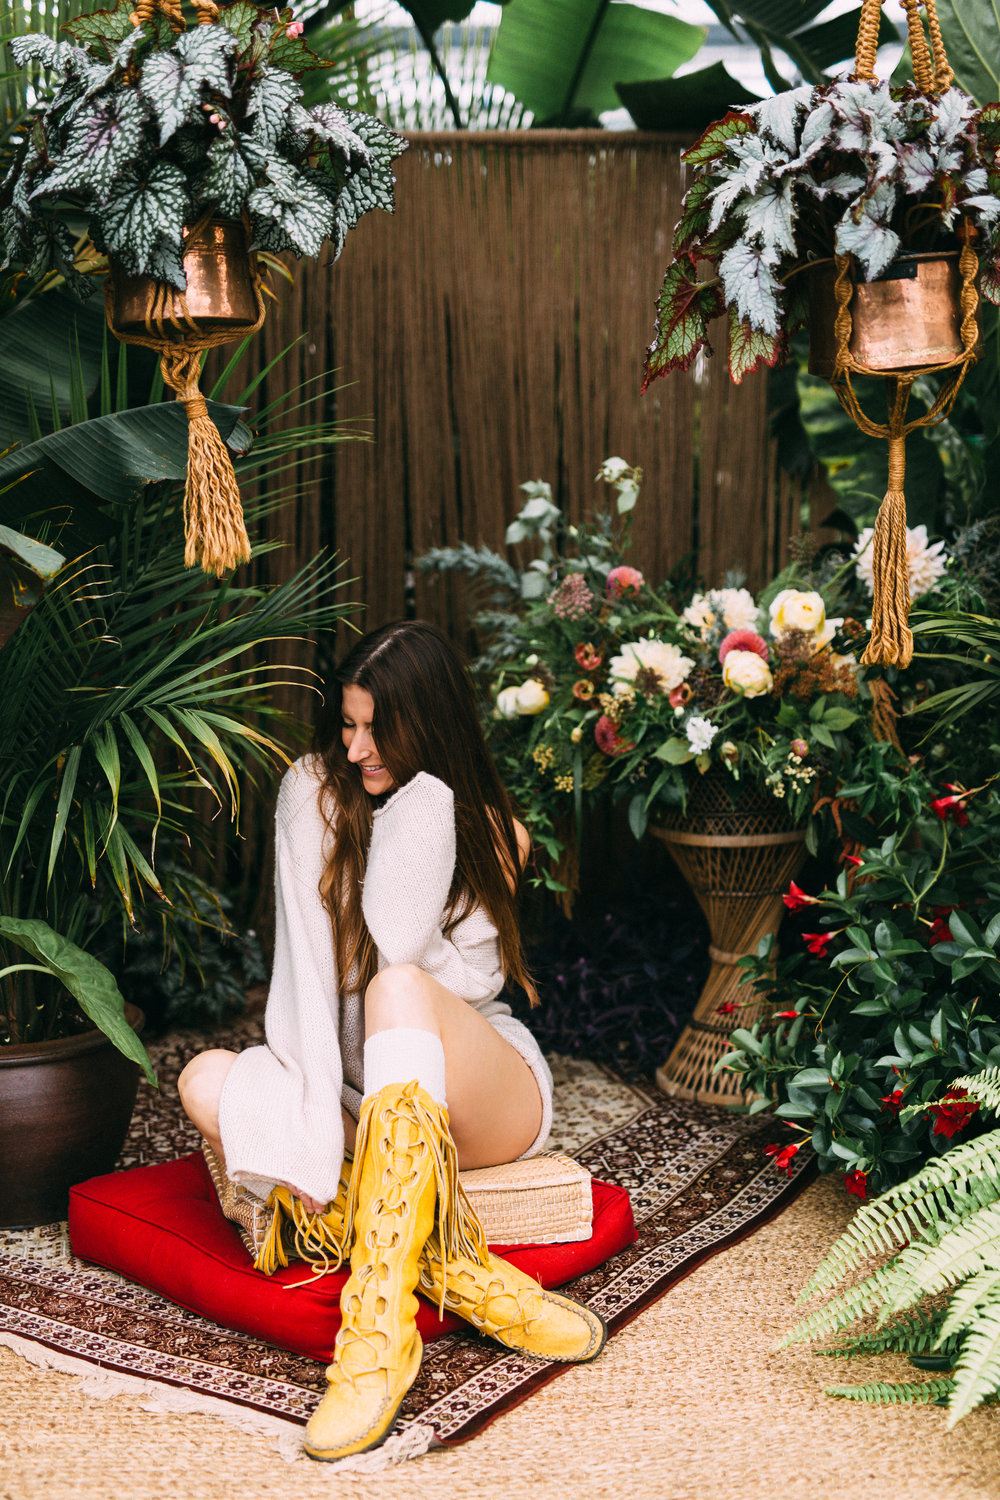 amanda cowley events niagara wedding planner free spirit styling bohemian style hanging macrame planter knee high moccasin boots